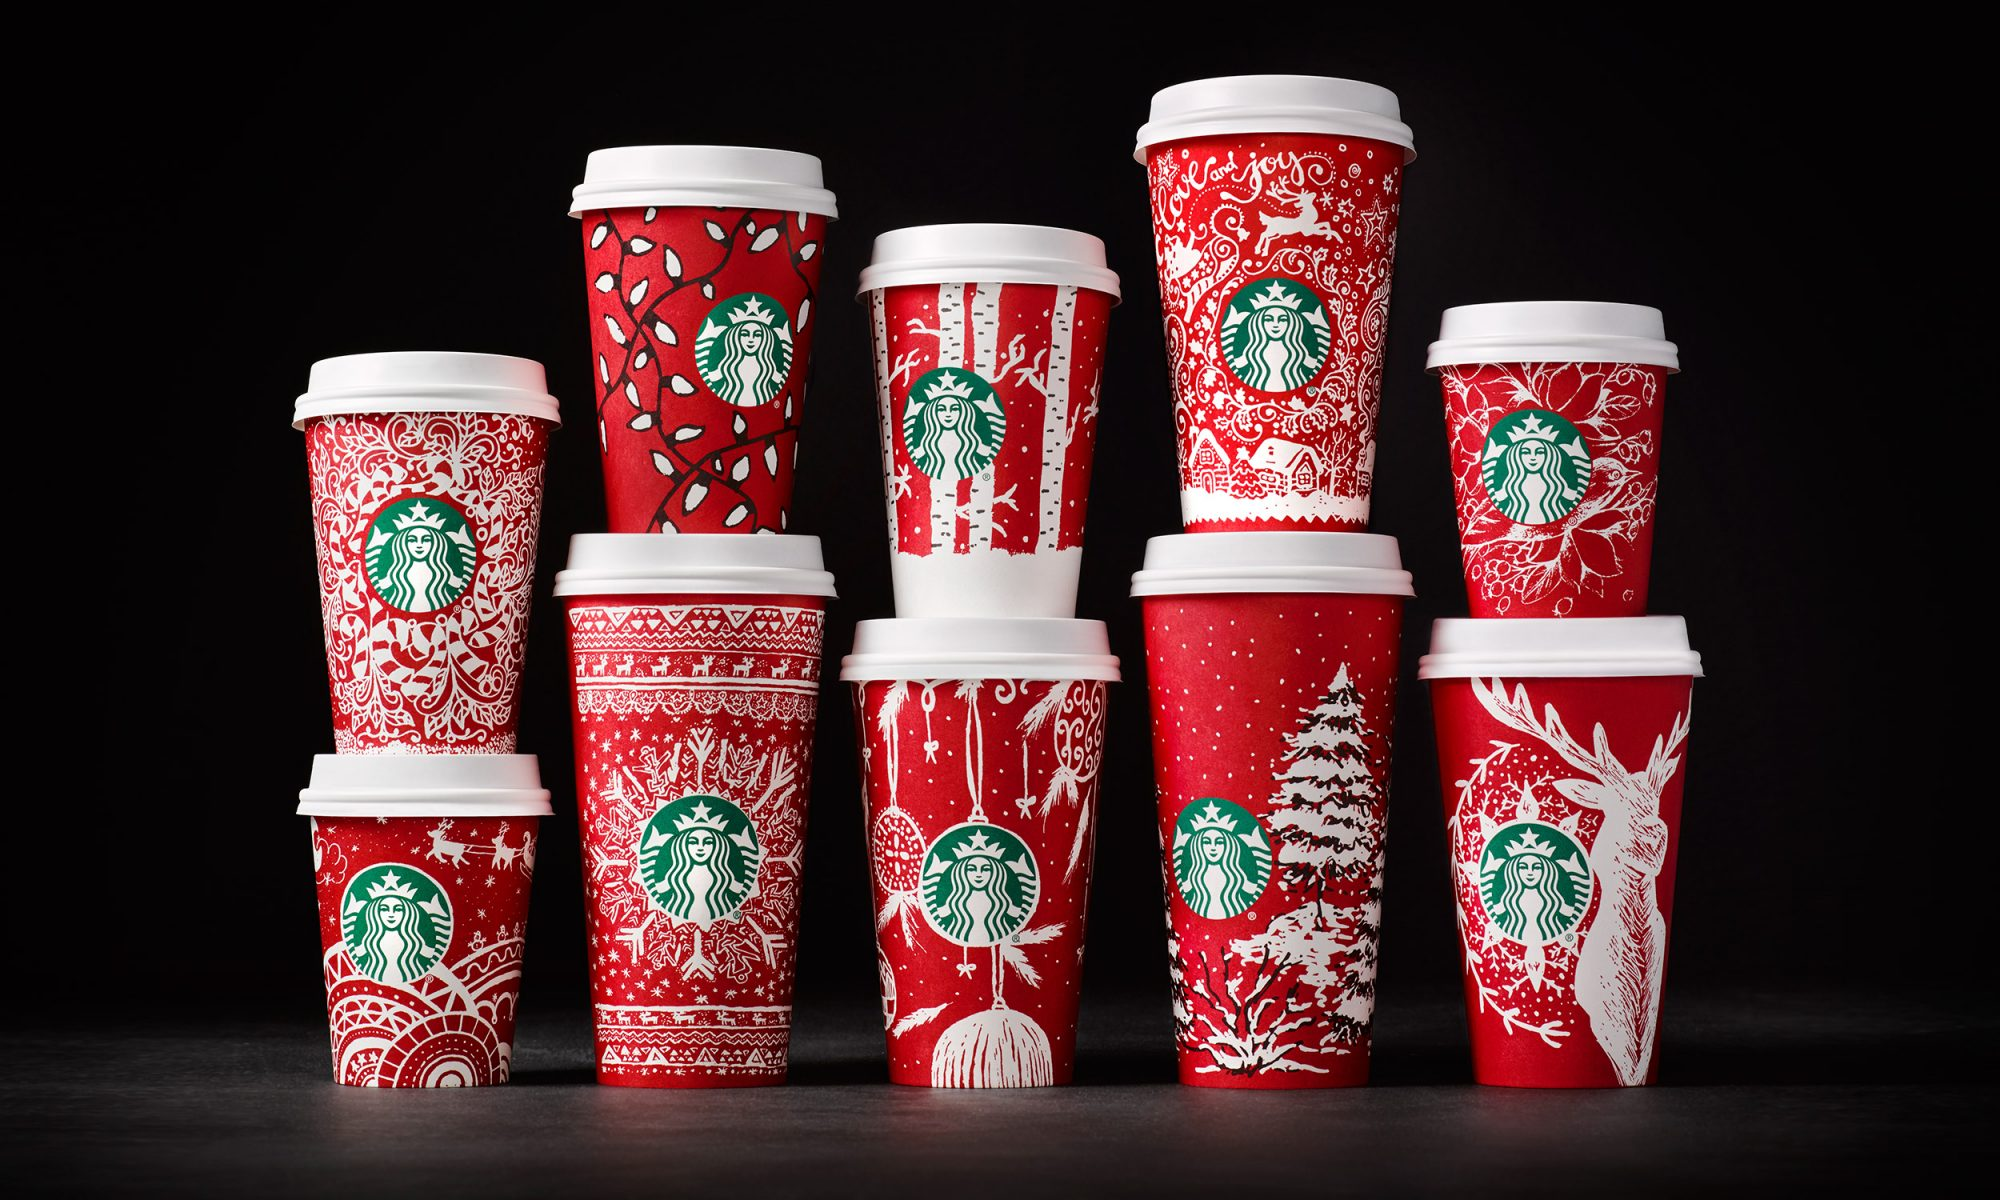 EC: New Starbucks Red Holiday Cups Are Revealed